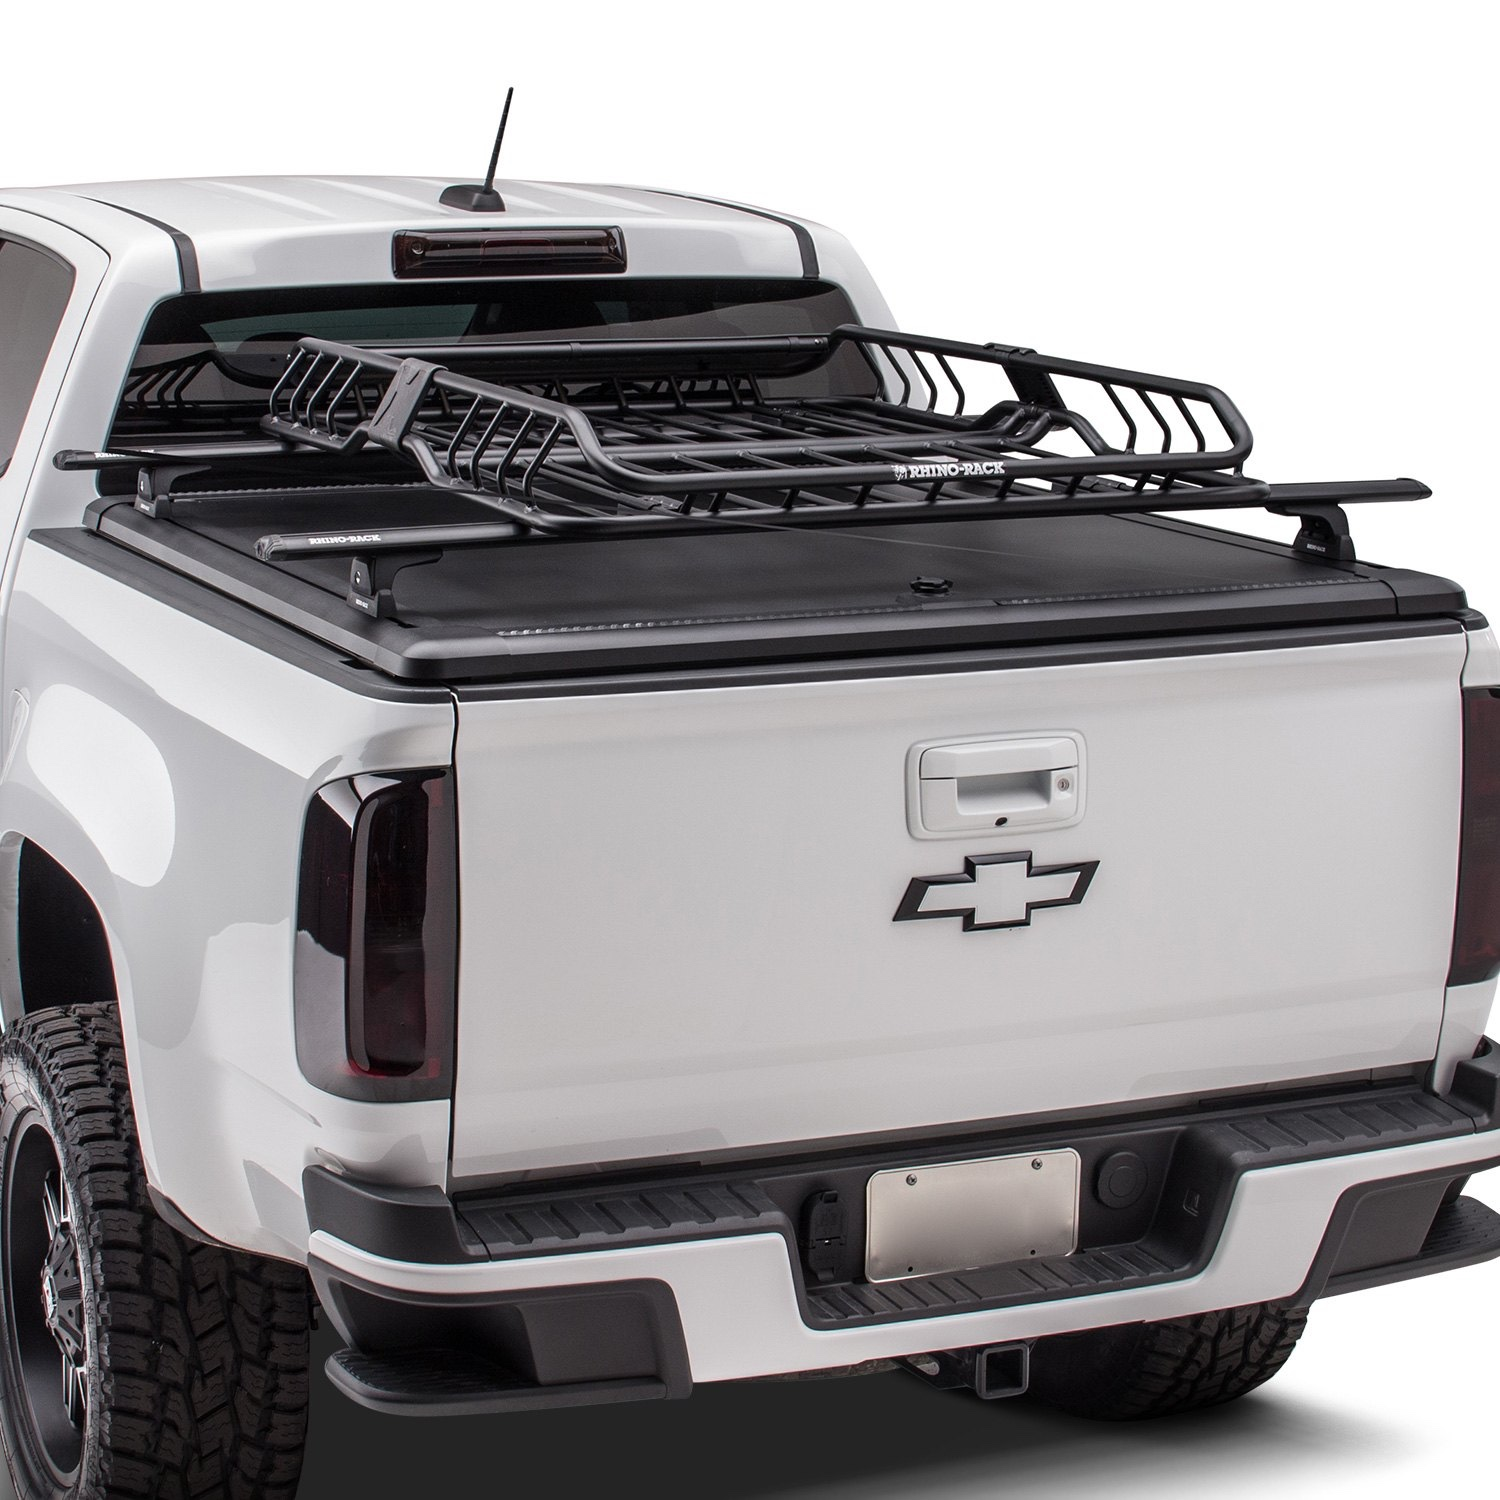 Mounting Thule Yakima Tracks On Bed Rails Chevy Colorado